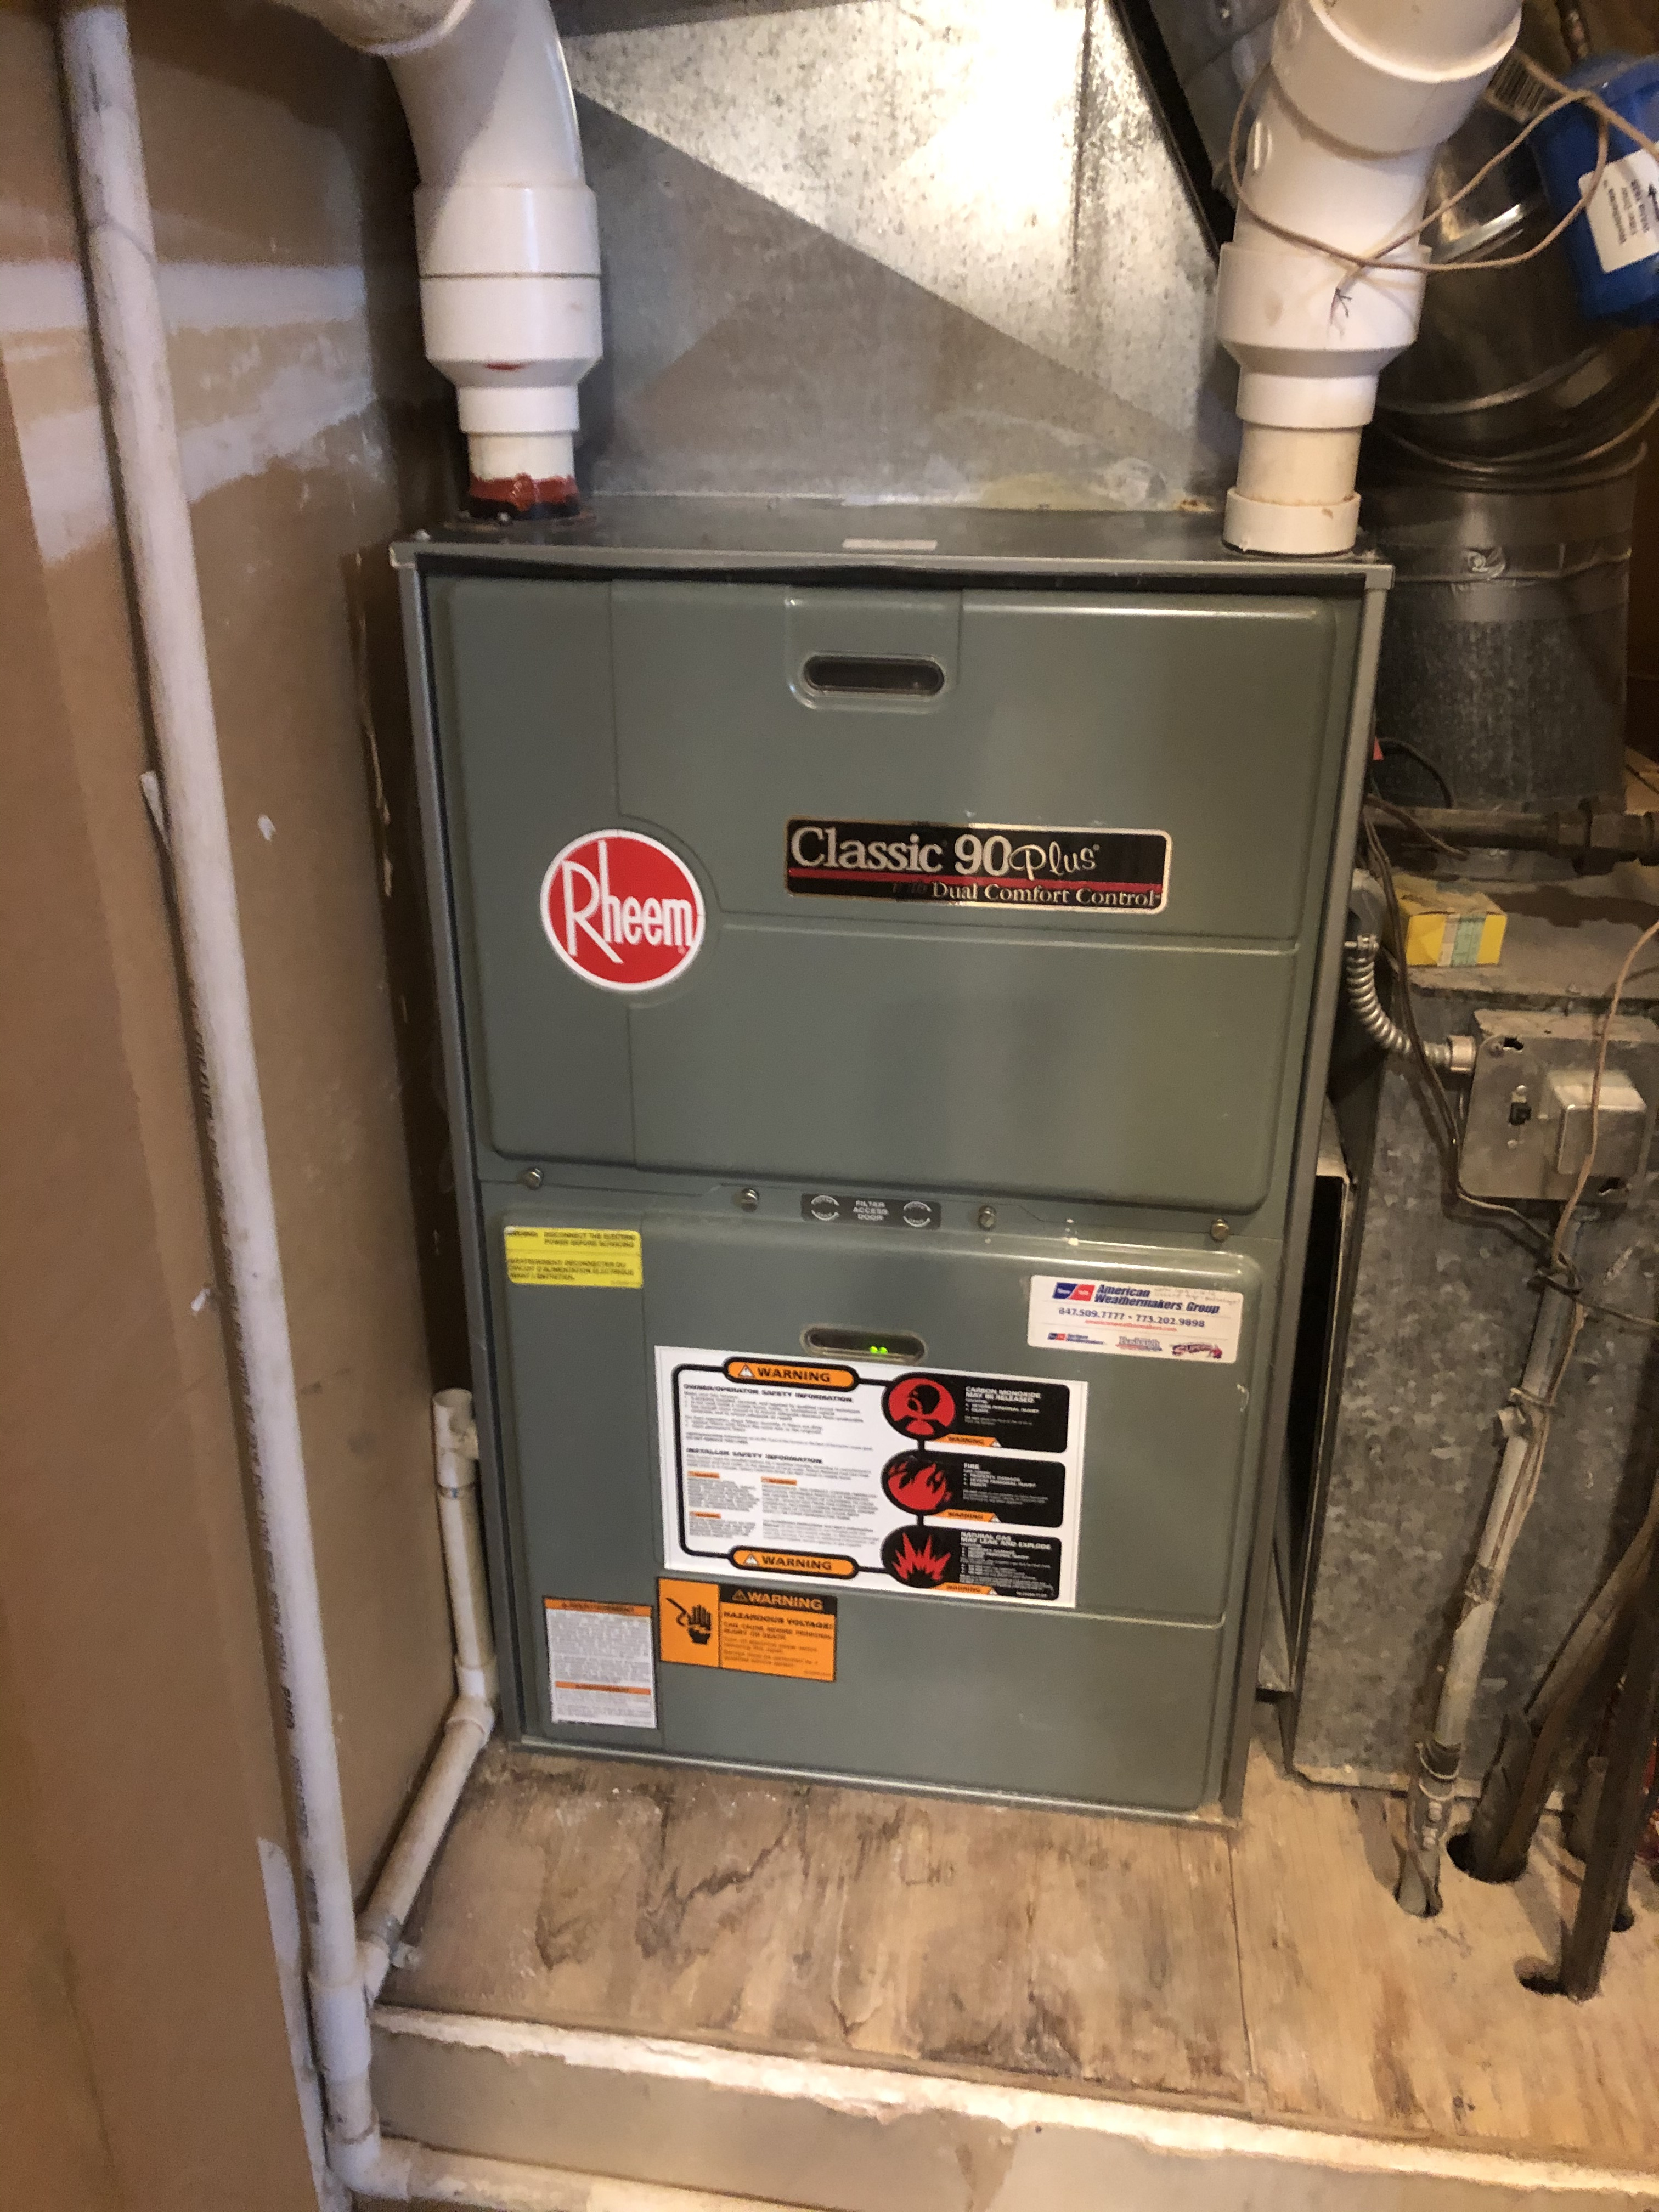 Keep your Rheem furnace running right this winter. Call American Weathermakers and schedule a maintenance today.